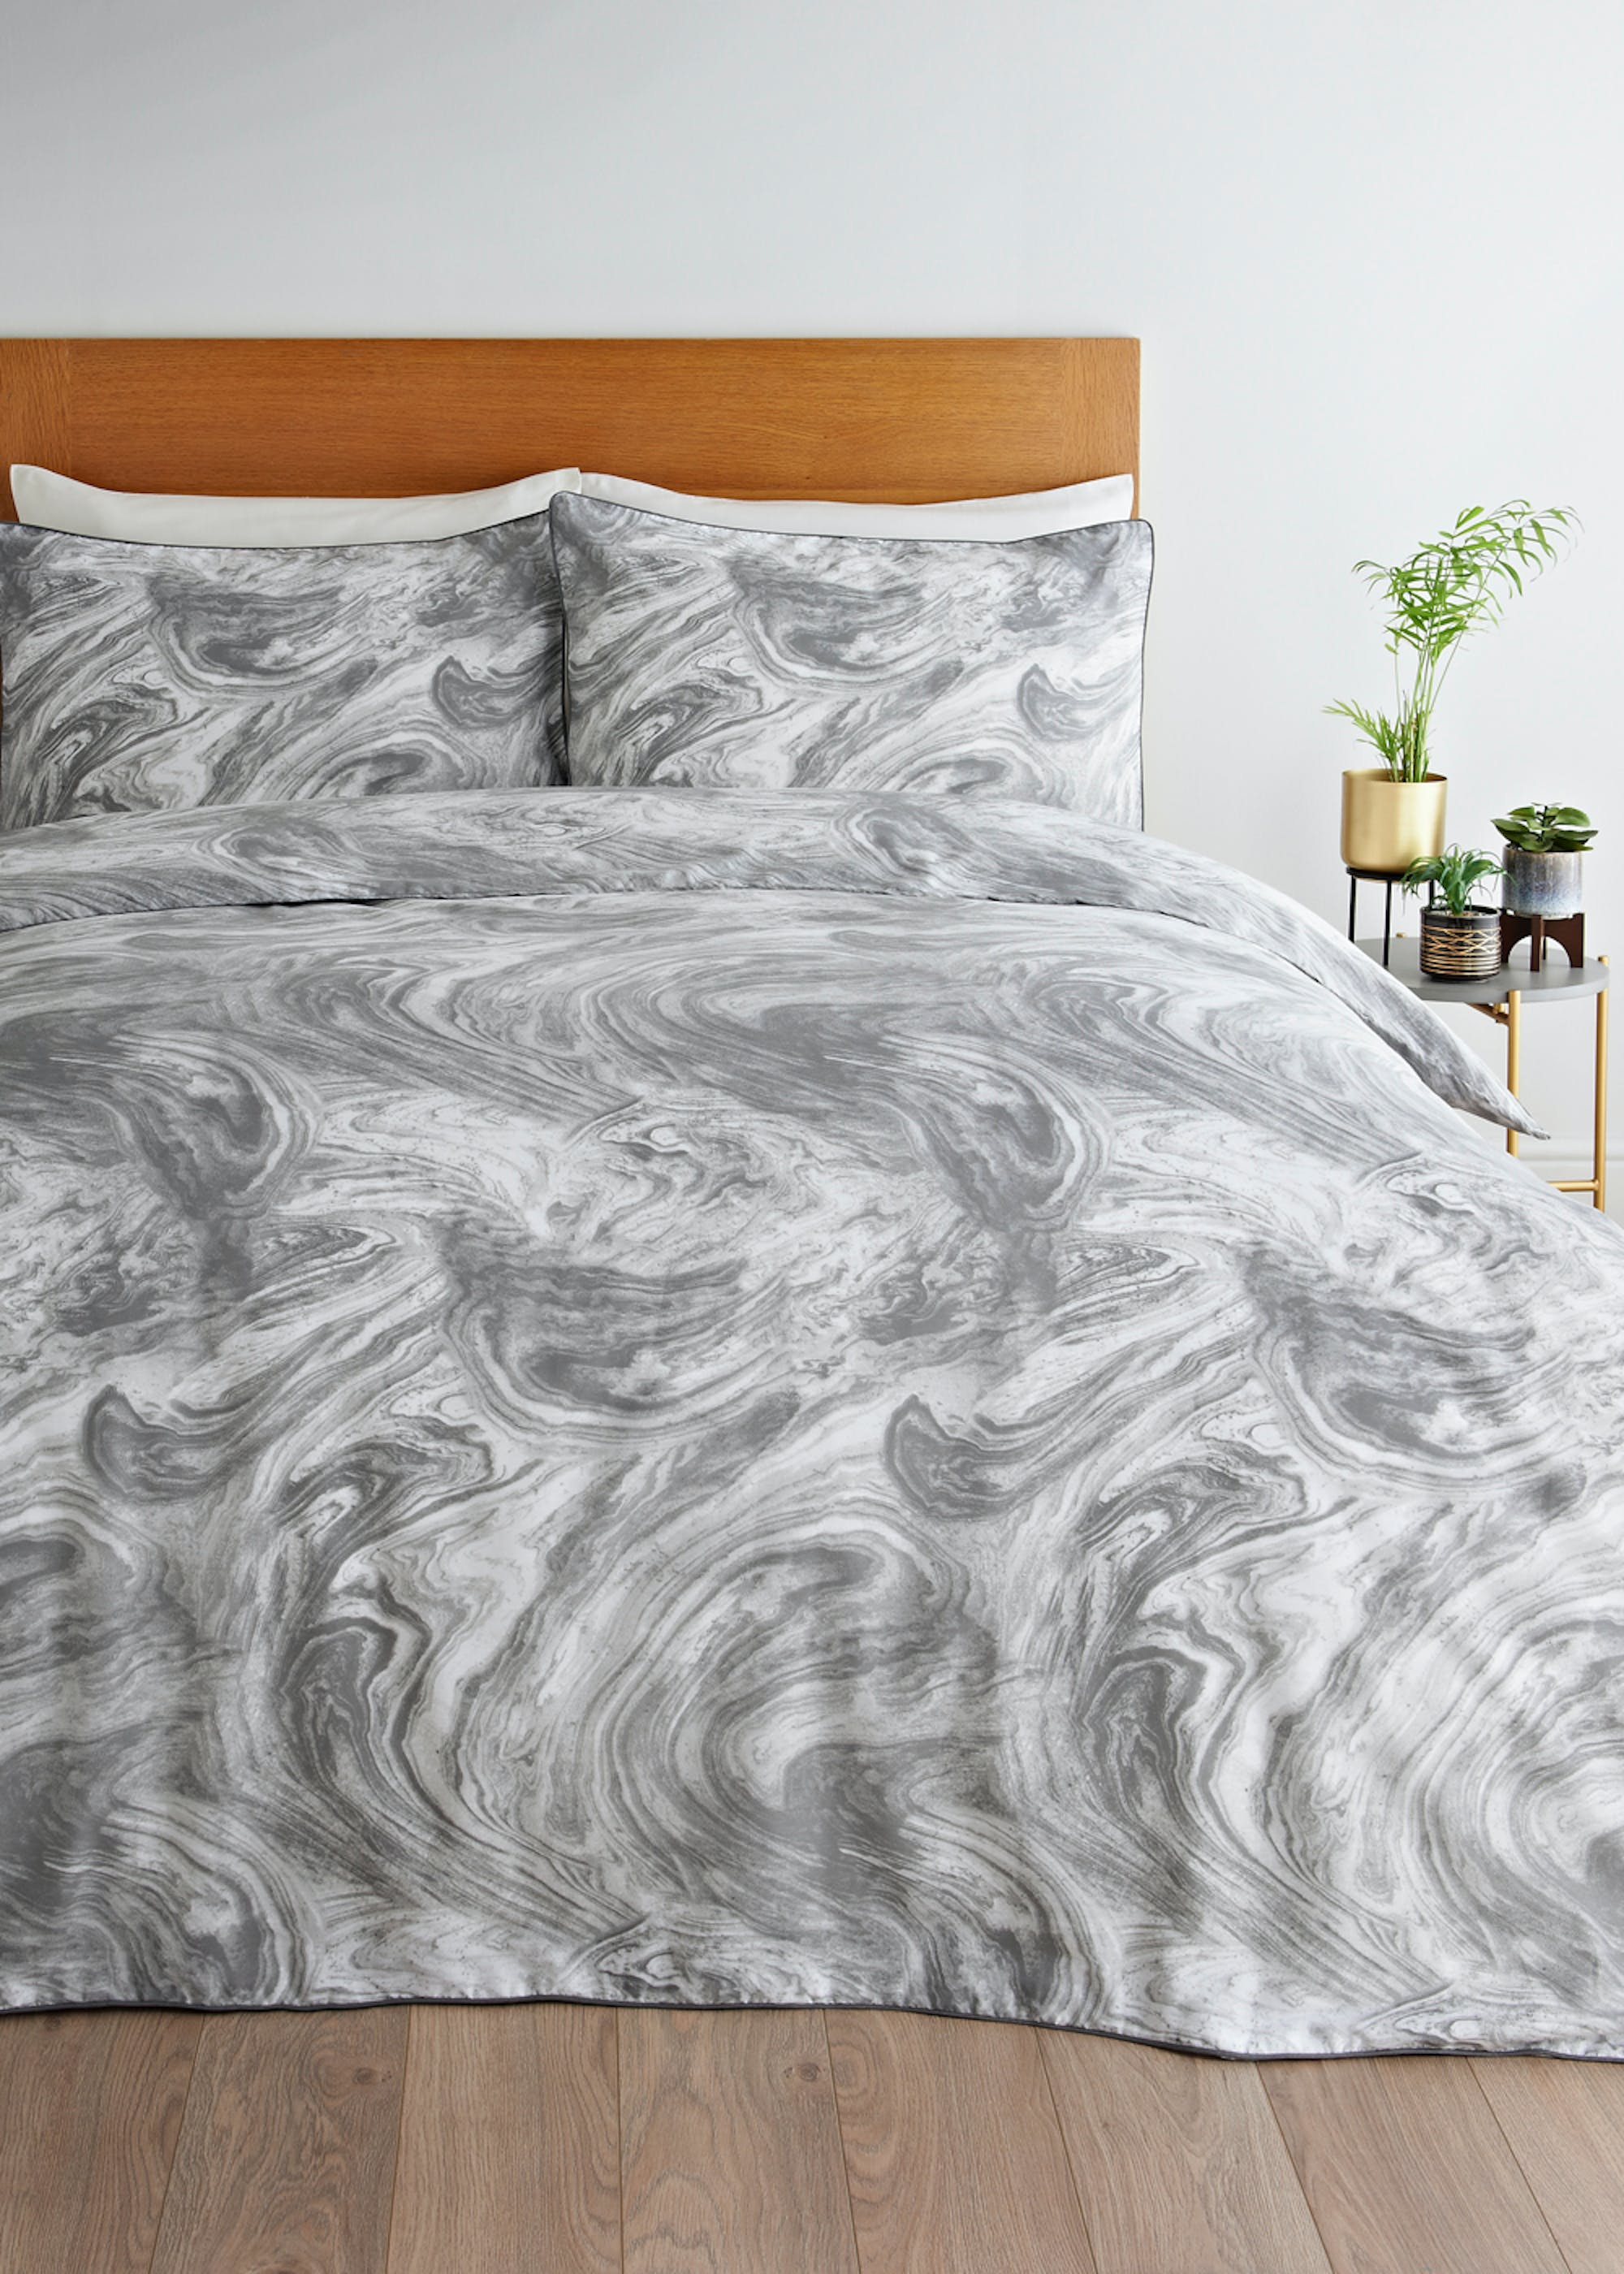 Marbled Reversible Duvet Cover Grey Di2ug9